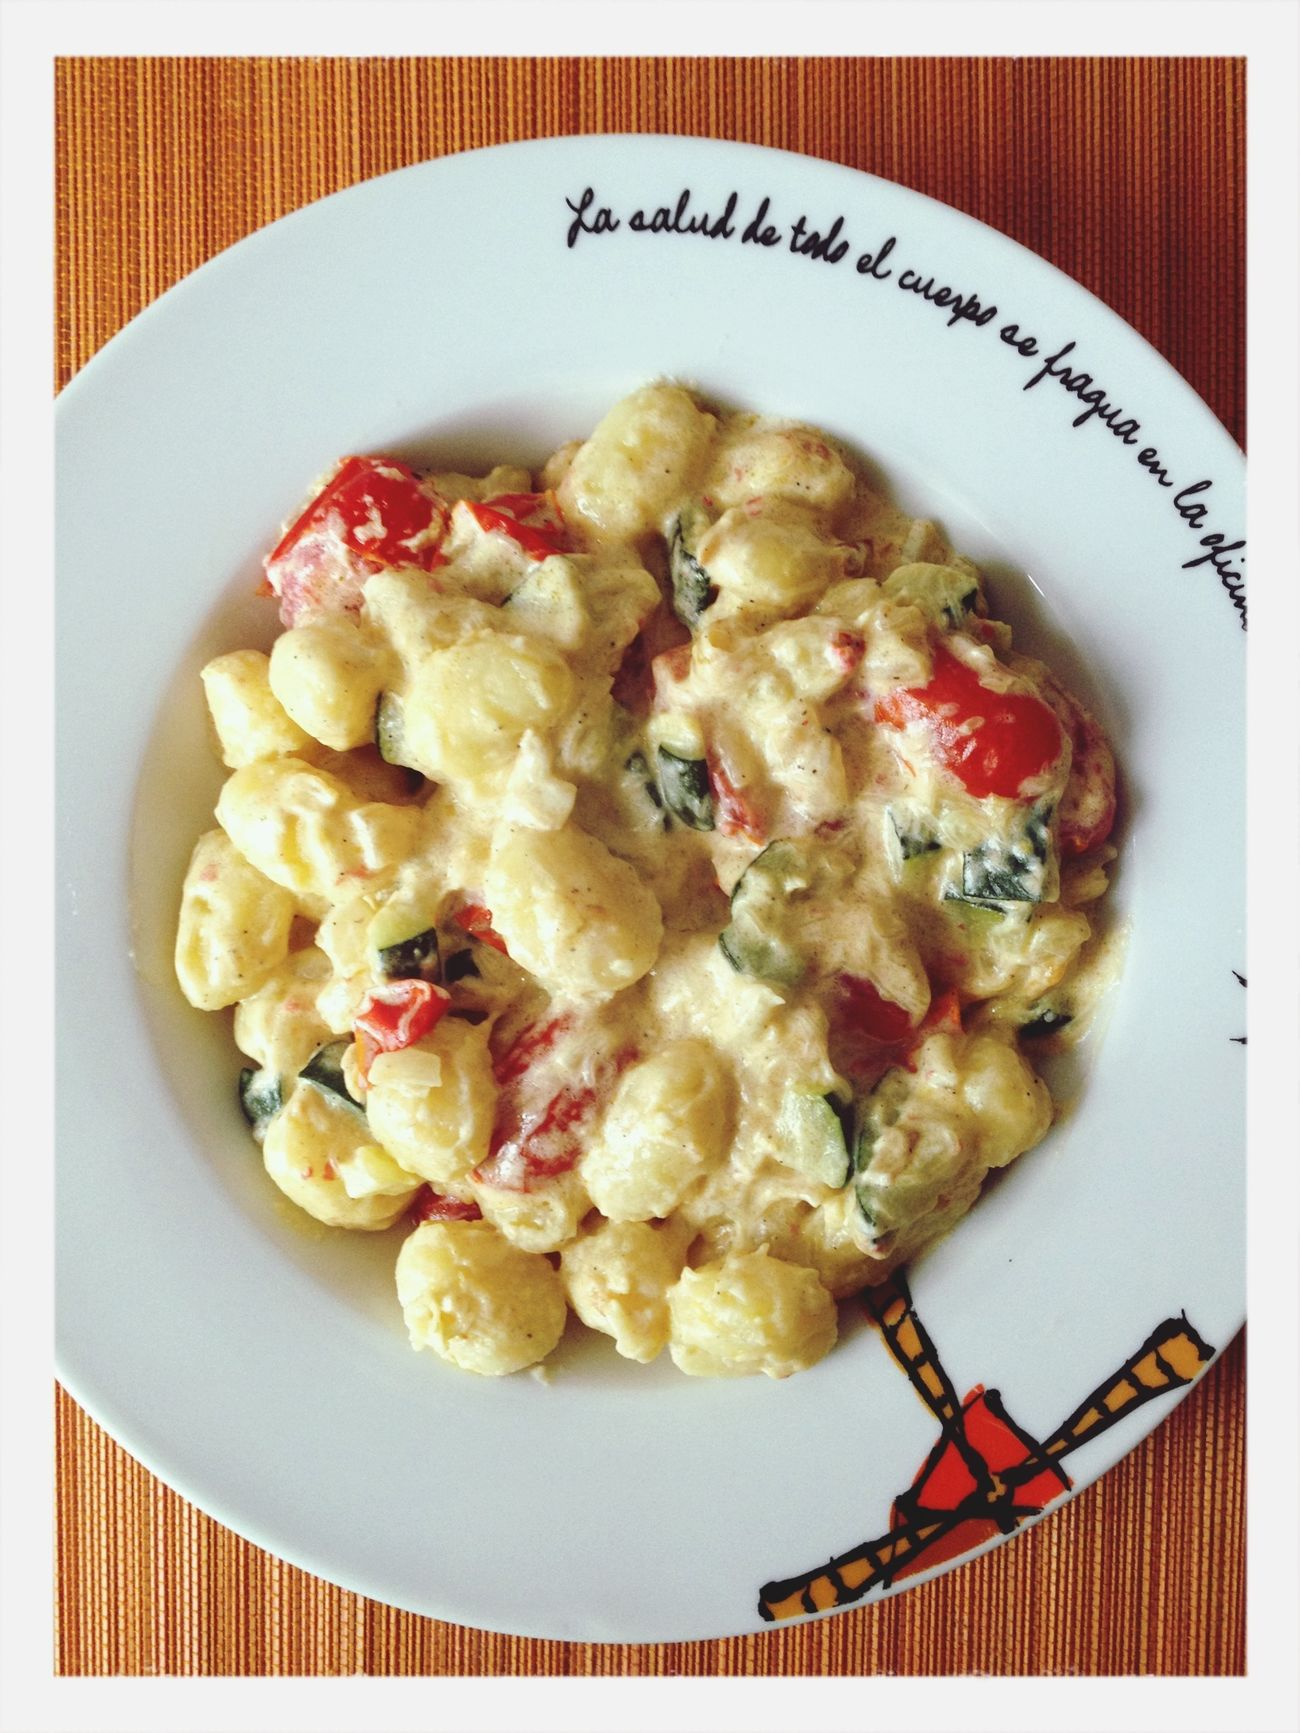 Gnoccis with sauteed vegetables (cherry tomatoes, onion and zucchini) and cream. Food Vegetarian Food Italian Food Gnocci